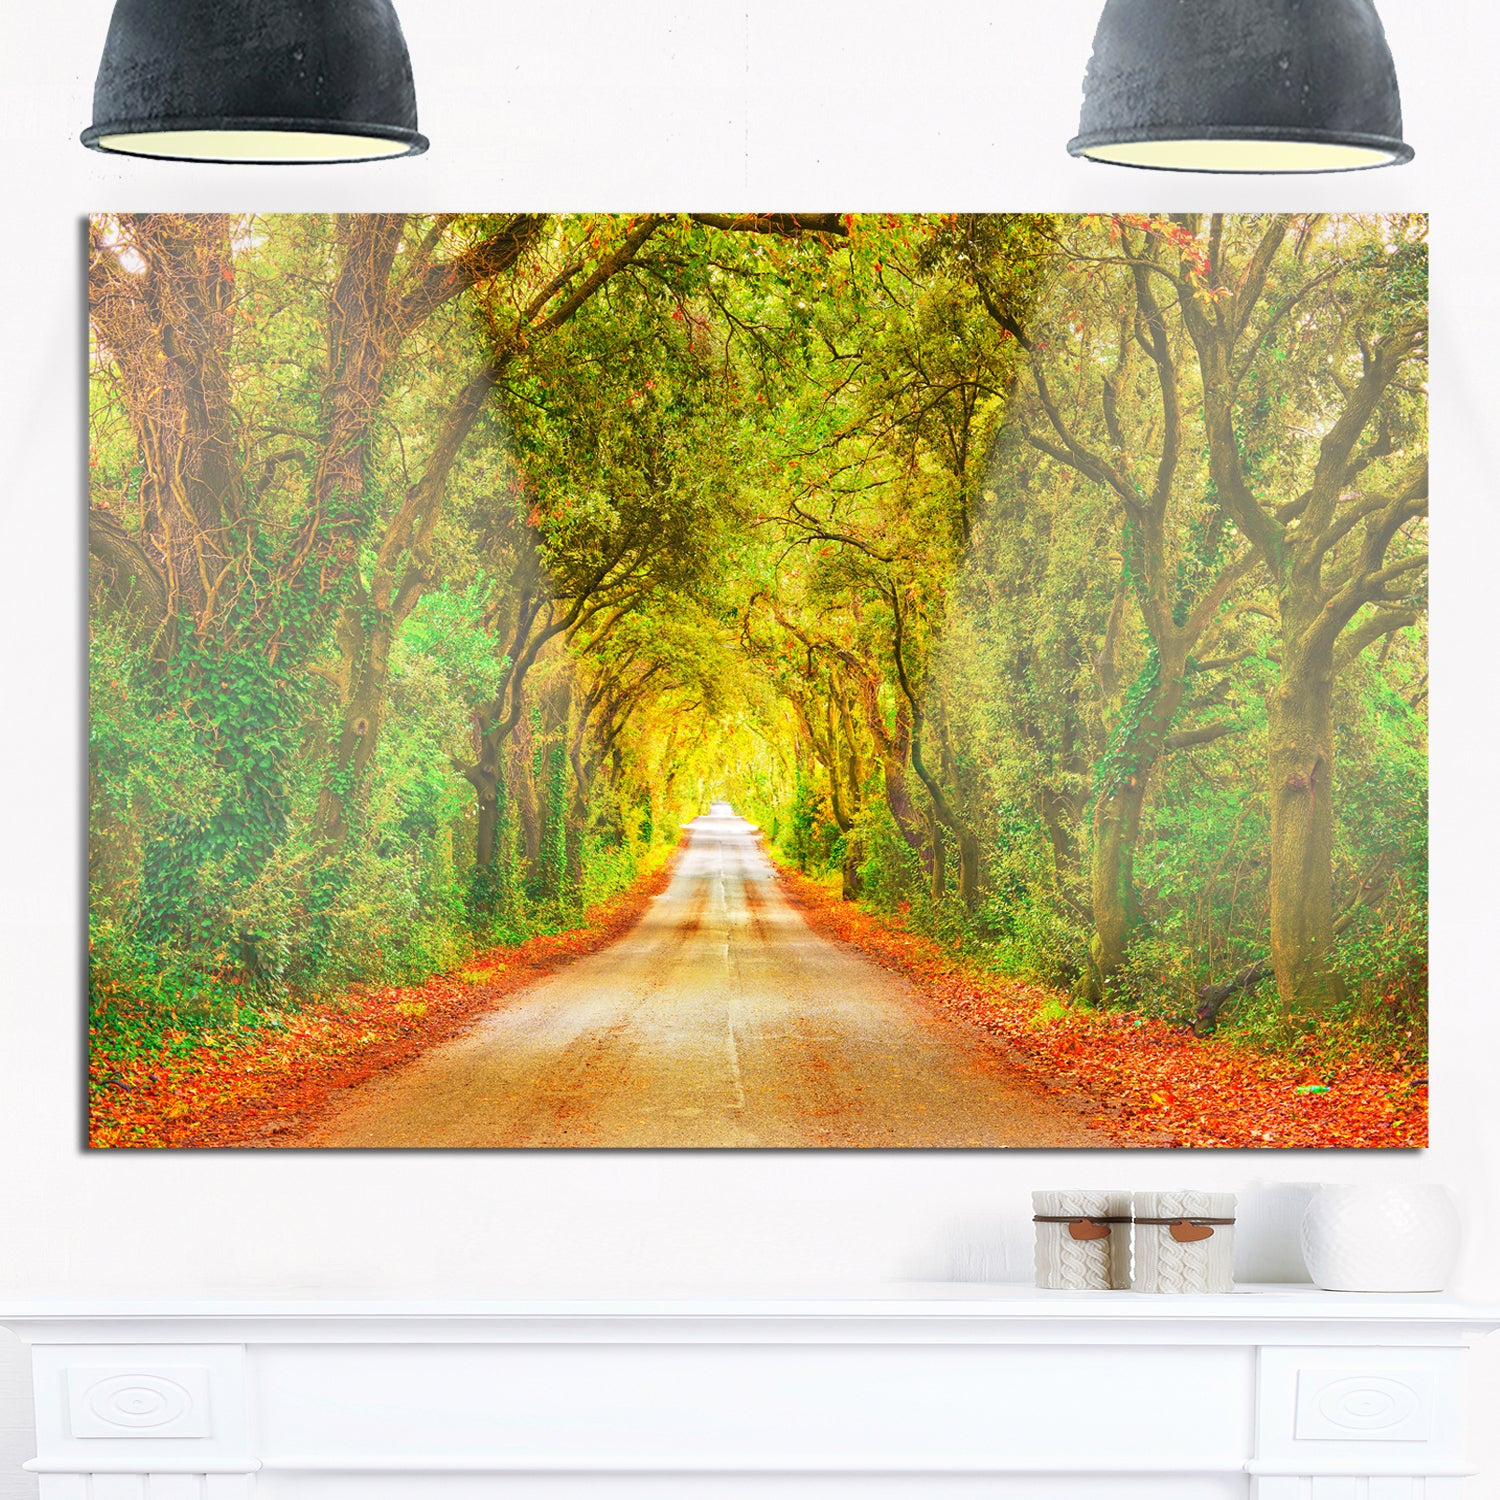 Fall Greenery and Road Straight Ahead - Oversized Forest Glossy ...